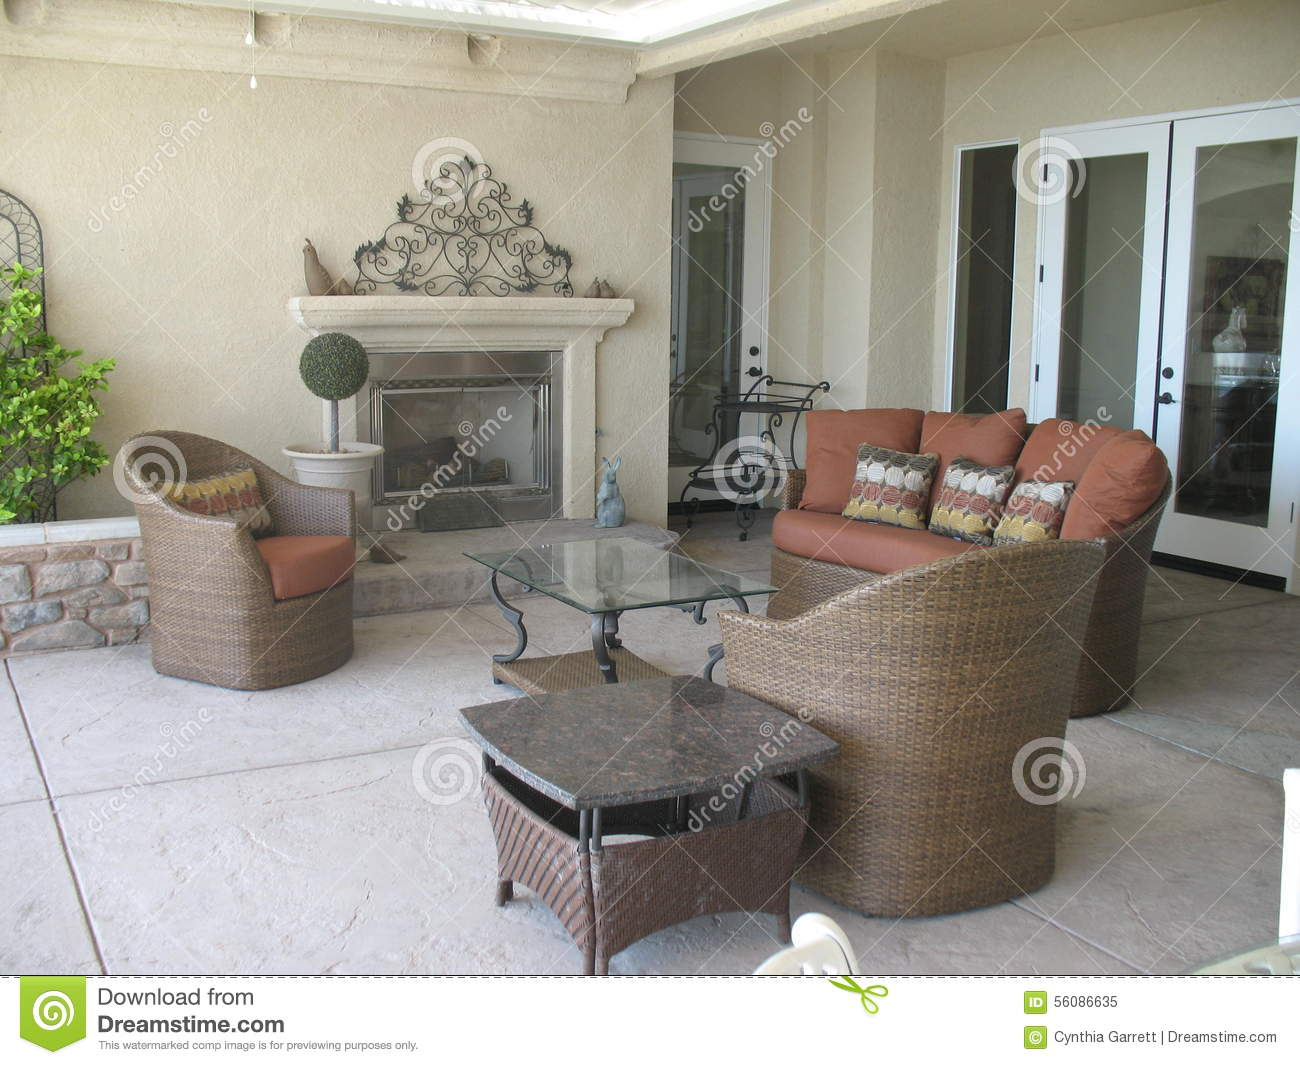 outdoor patio with fireplace and wicker furniture stock image image of table friends 56086635